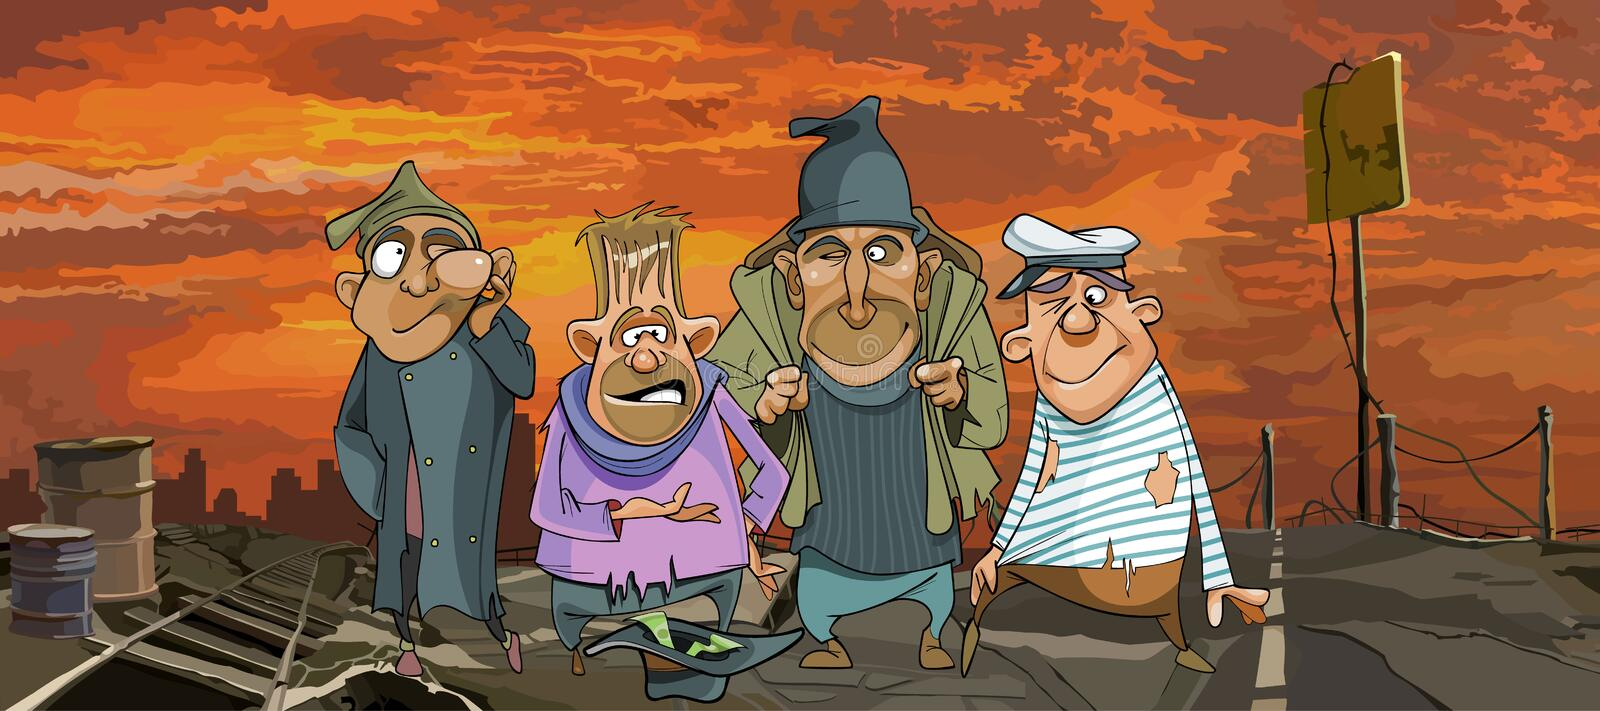 Cartoon funny homeless men in ragged clothes in ruins. City royalty free illustration